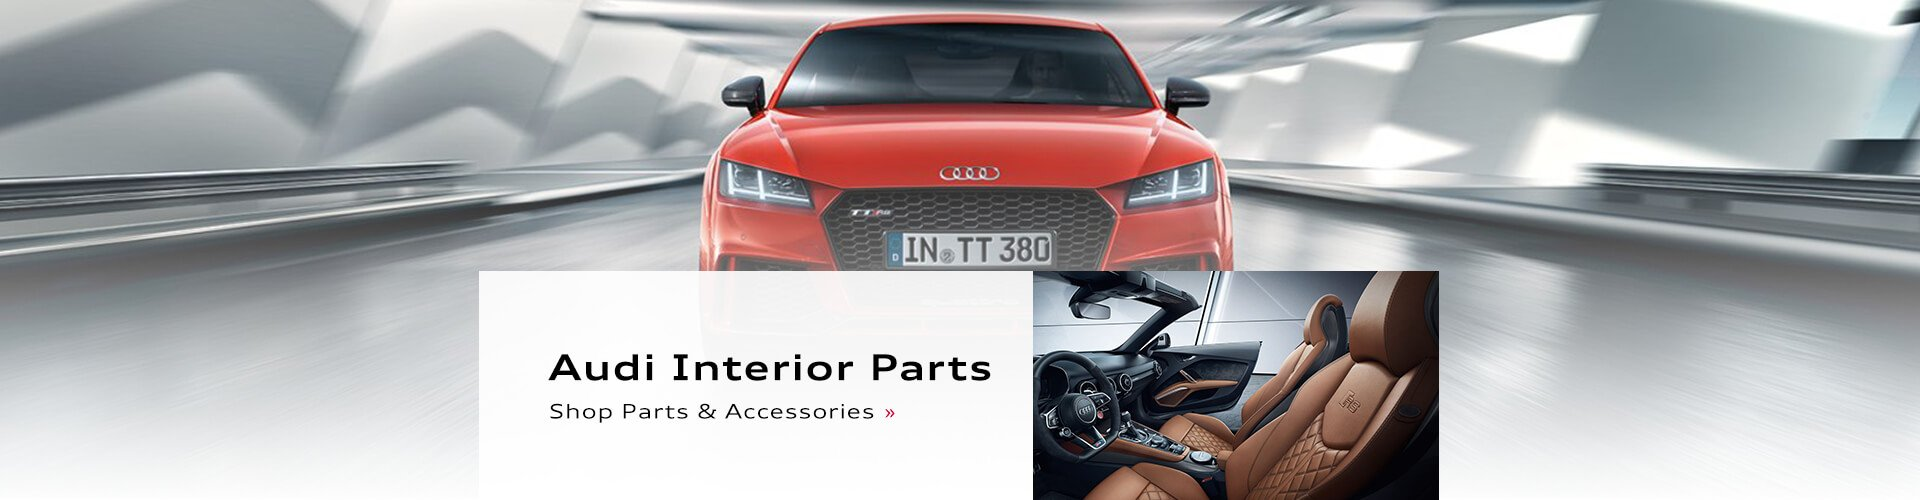 Genuine Audi Interior Parts